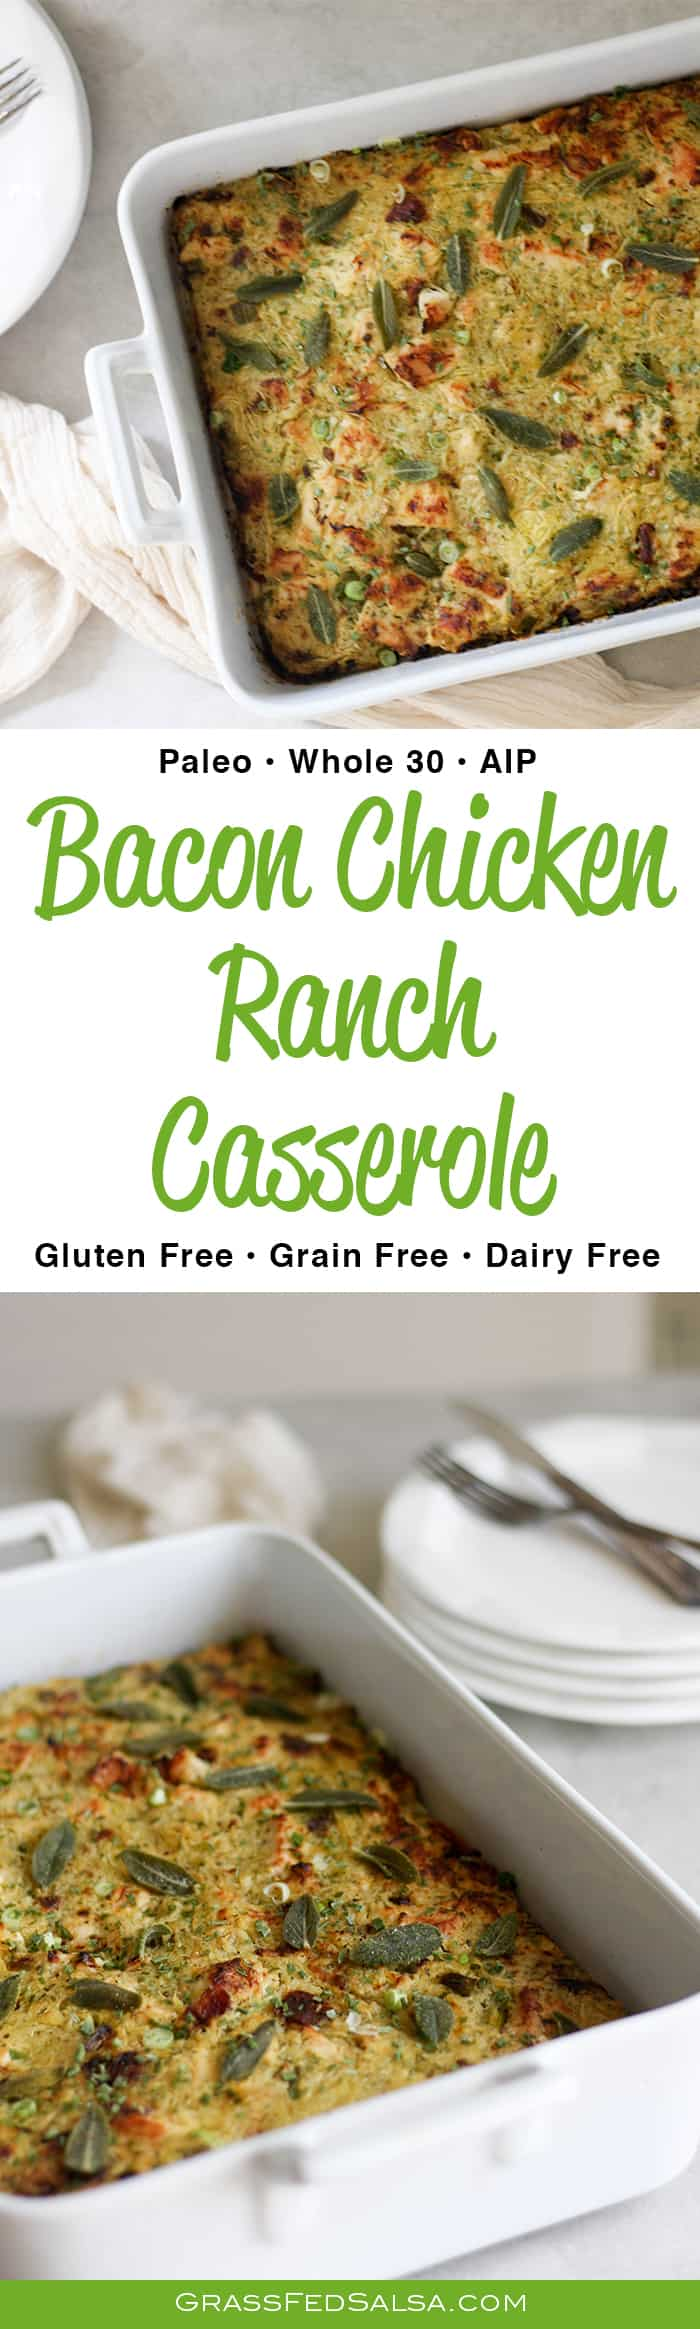 This Bacon Chicken Ranch Casserole is one of the best AIP recipes! It's an easy dinner that's great for batch cooking and freezing leftovers for lunch. Bonus: it's a winner for kids! If you're following the Autoimmune Protocol, you have to try this Whole30, Paleo, low carb, and gluten free spaghetti squash casserole.